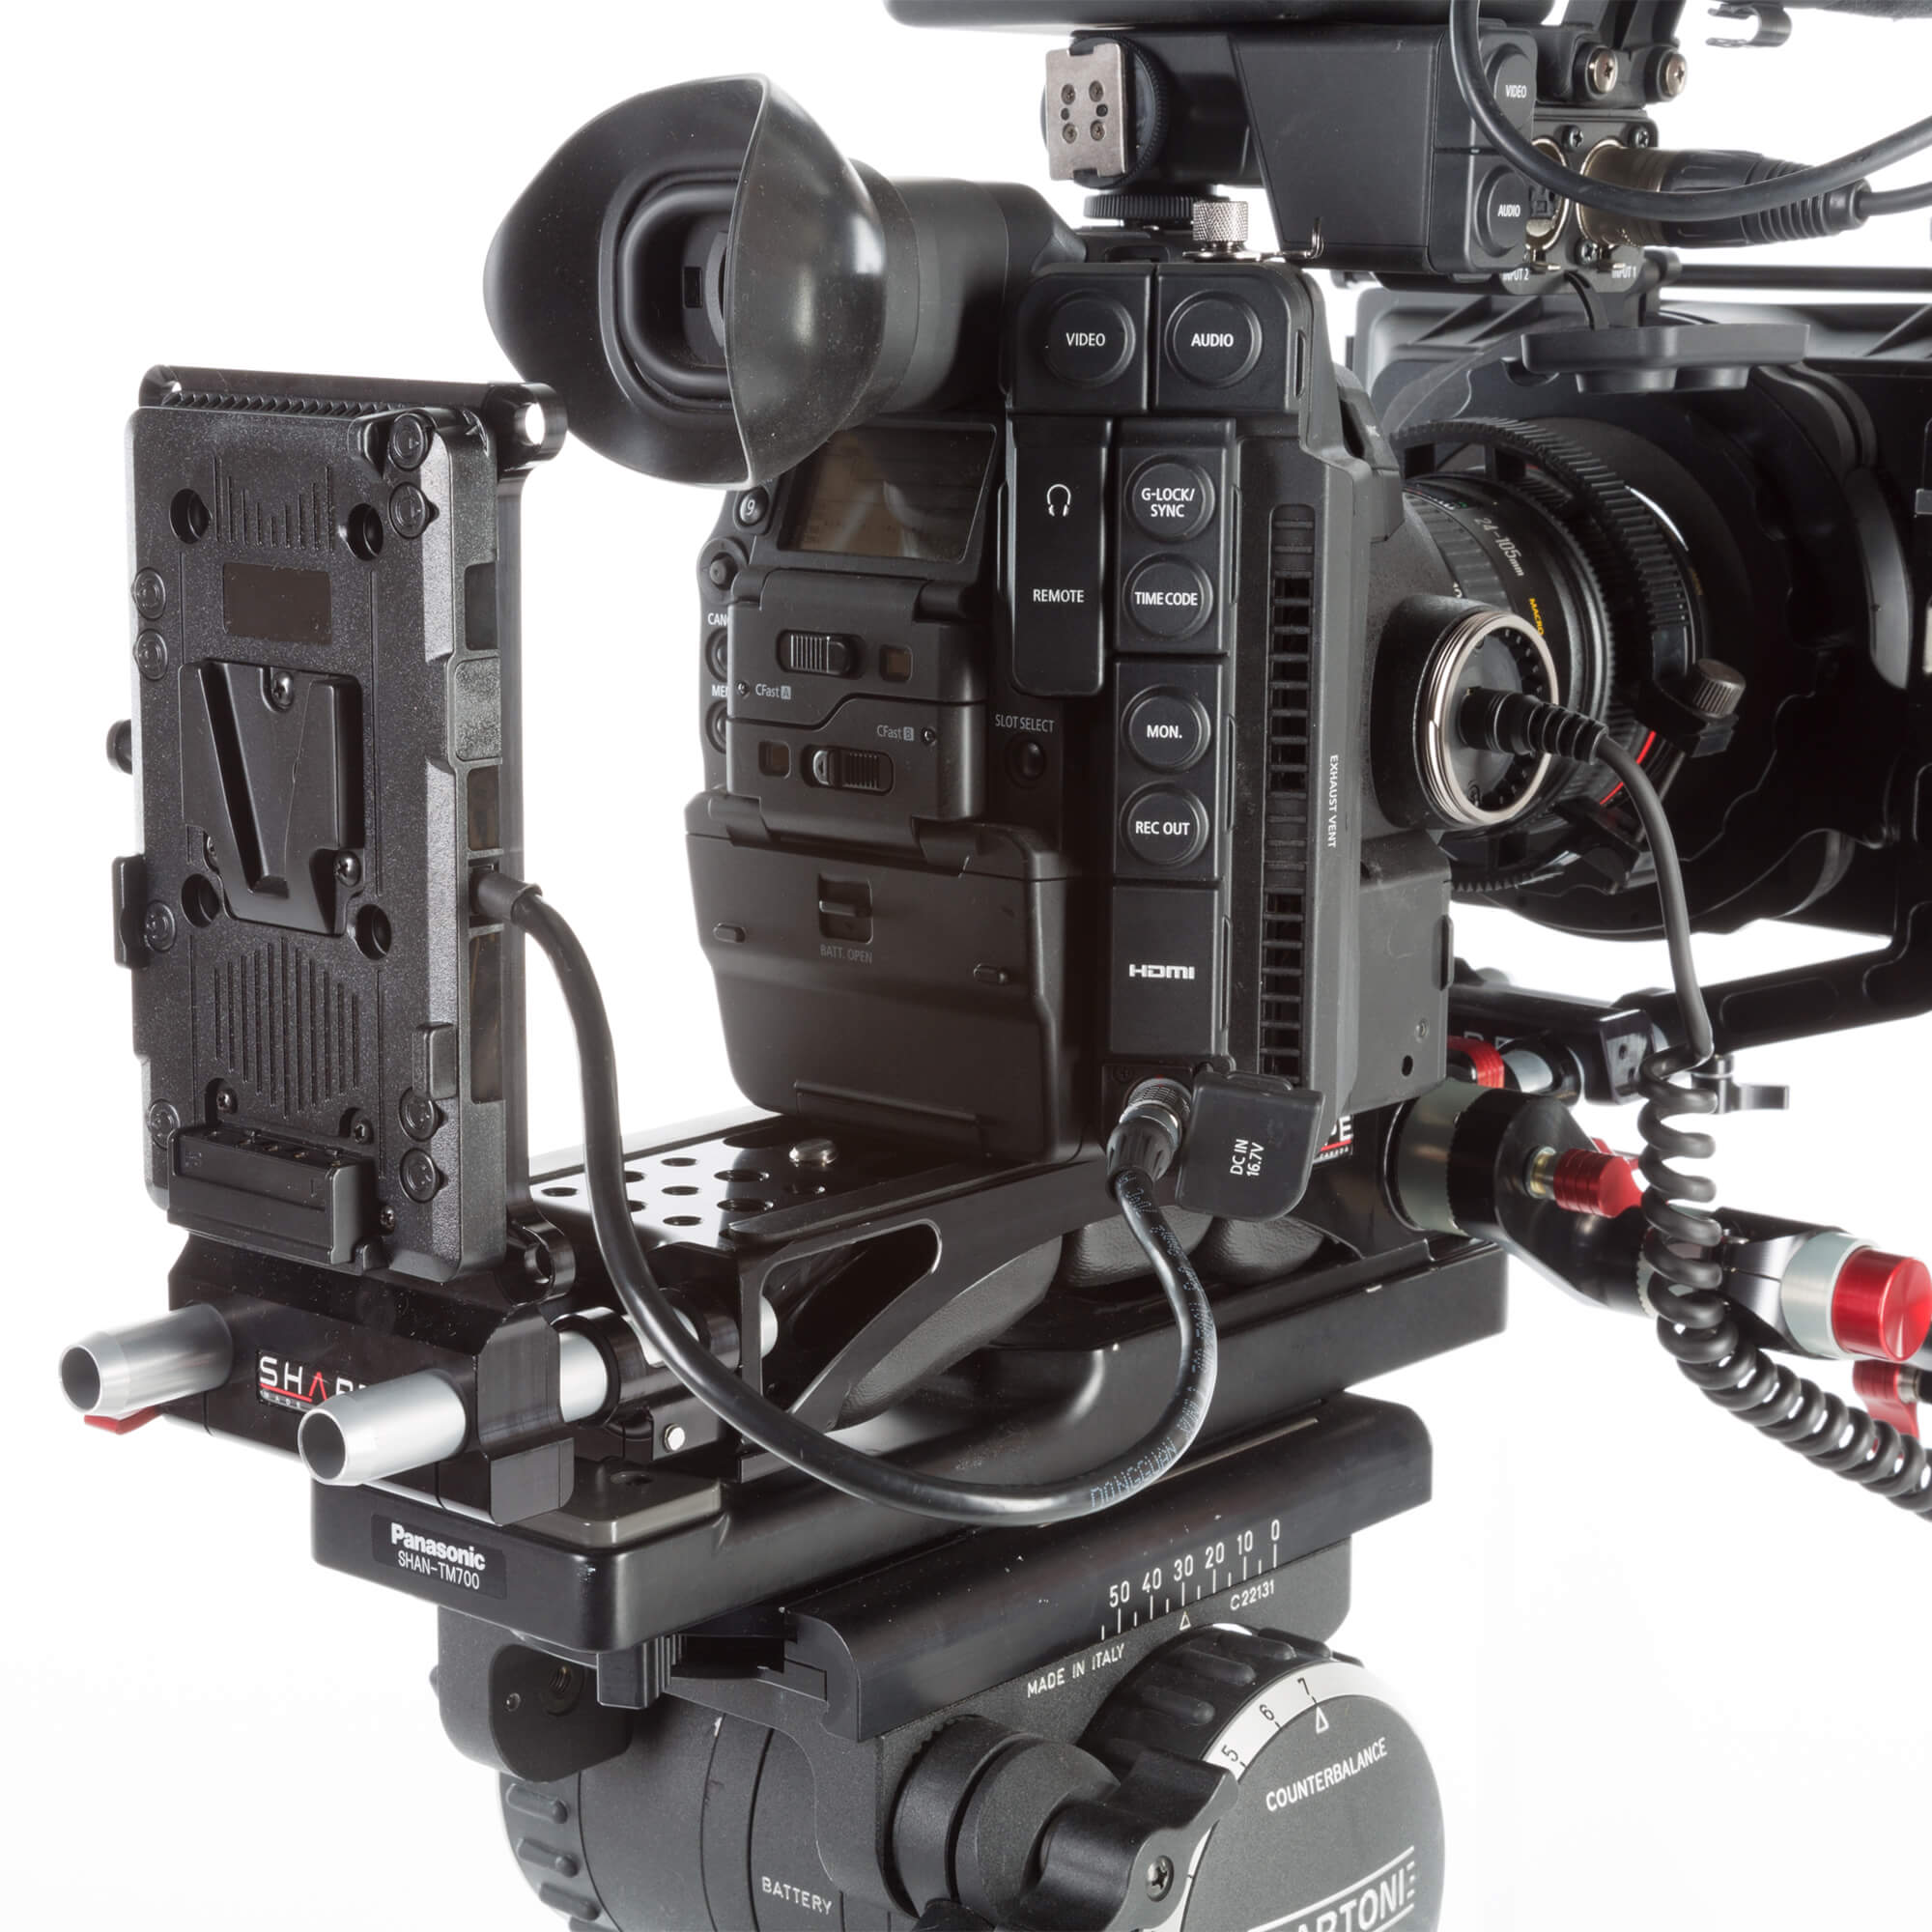 15 mm cheeseplate V-mount for C200 and C300 mark 2 - SHAPE